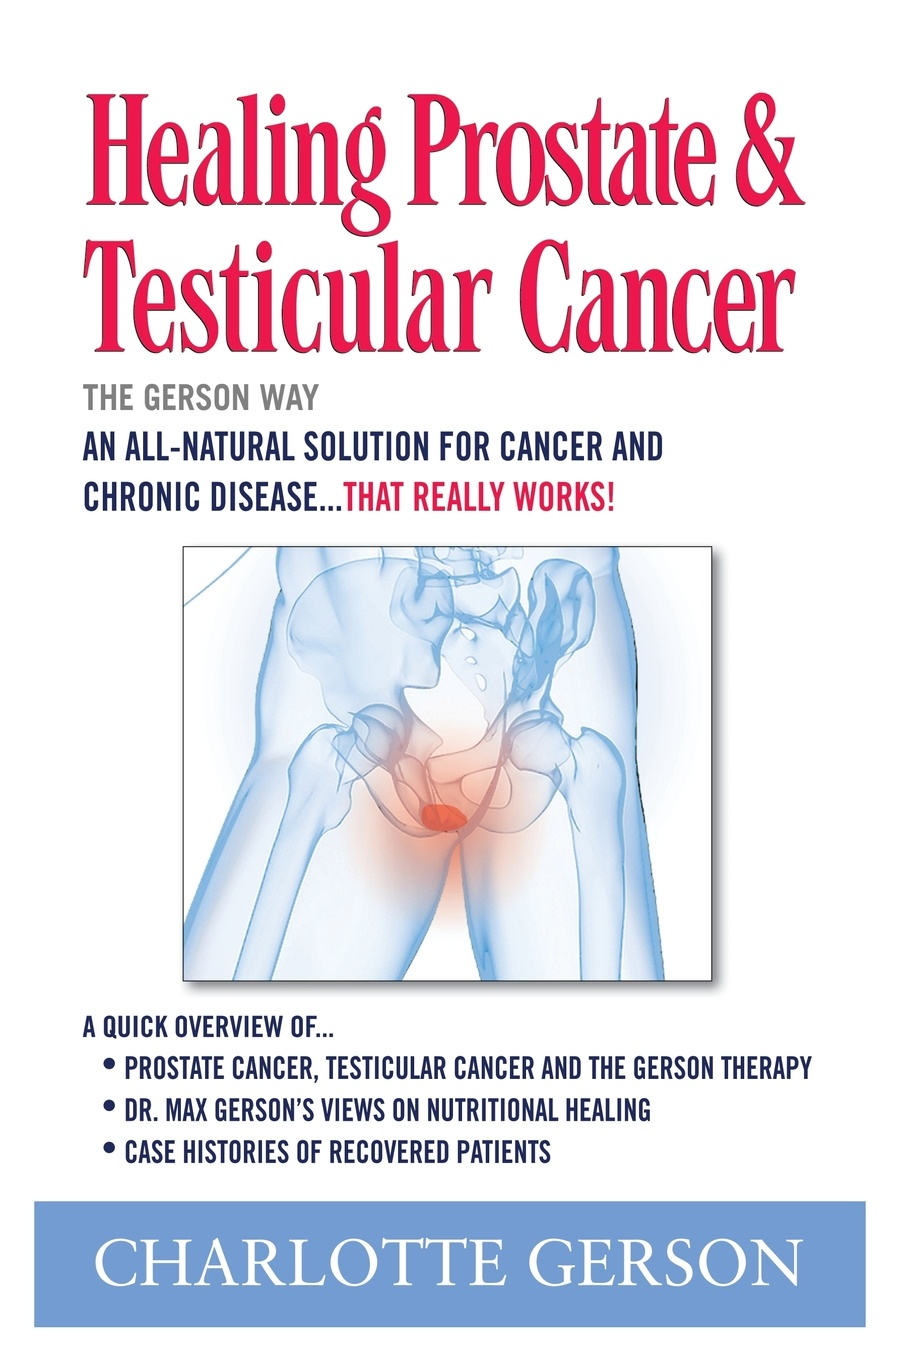 Charlotte Gerson Healing Prostate & Testicular Cancer. The Way